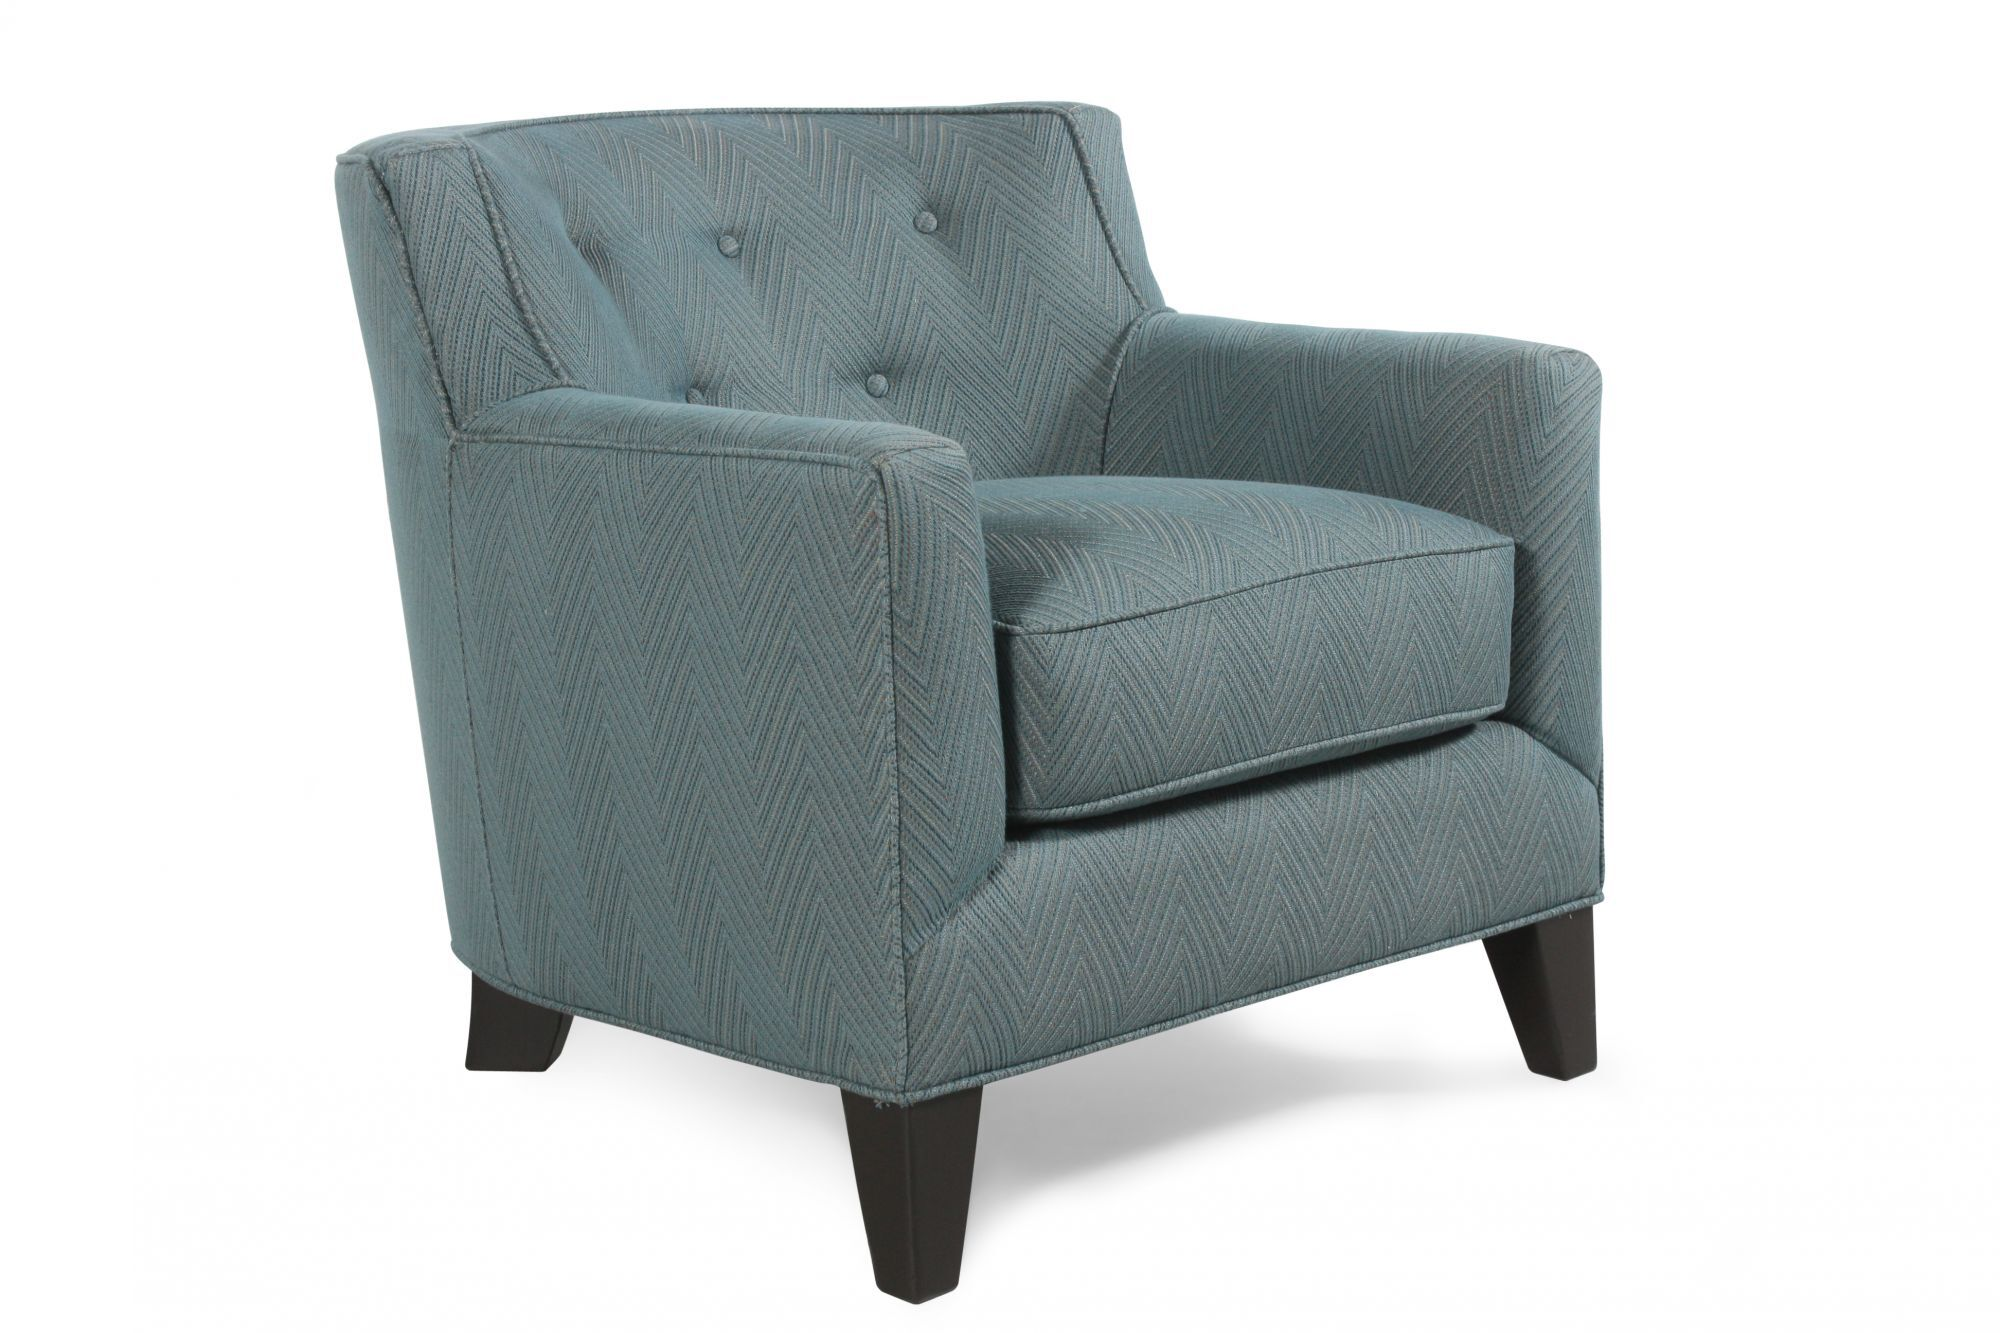 teal tufted chair swivel shower with back and arms button herringbone accent in mathis